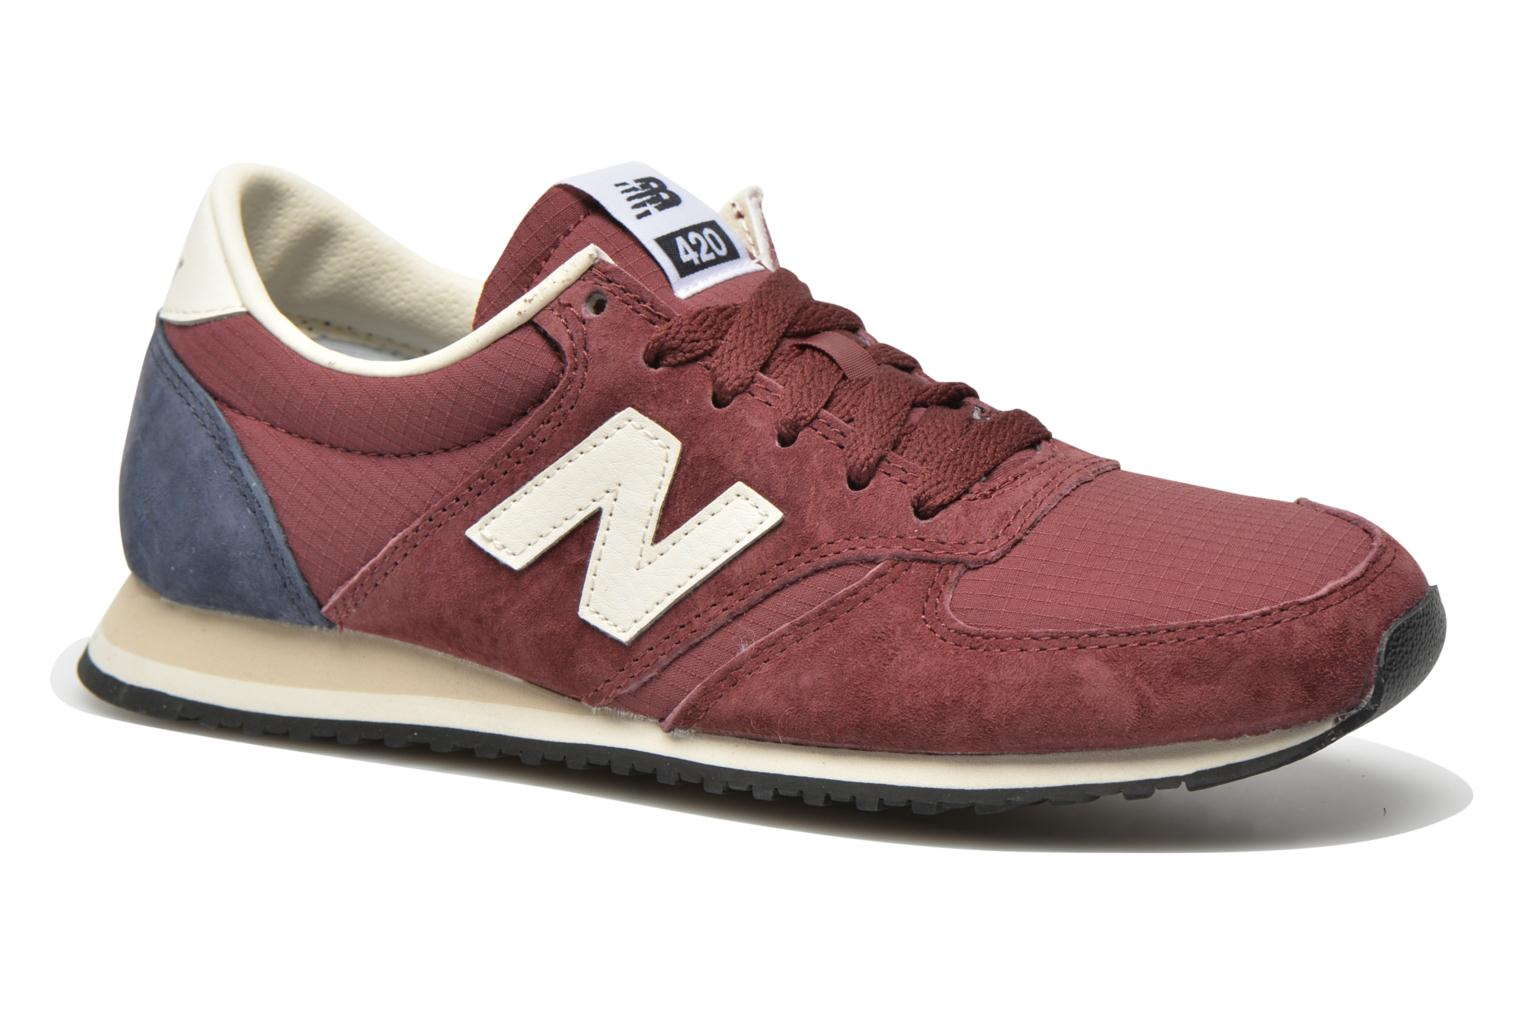 New Balance U 420 RBN Schuhe burgundy-navy-off white - 38 98CcRP